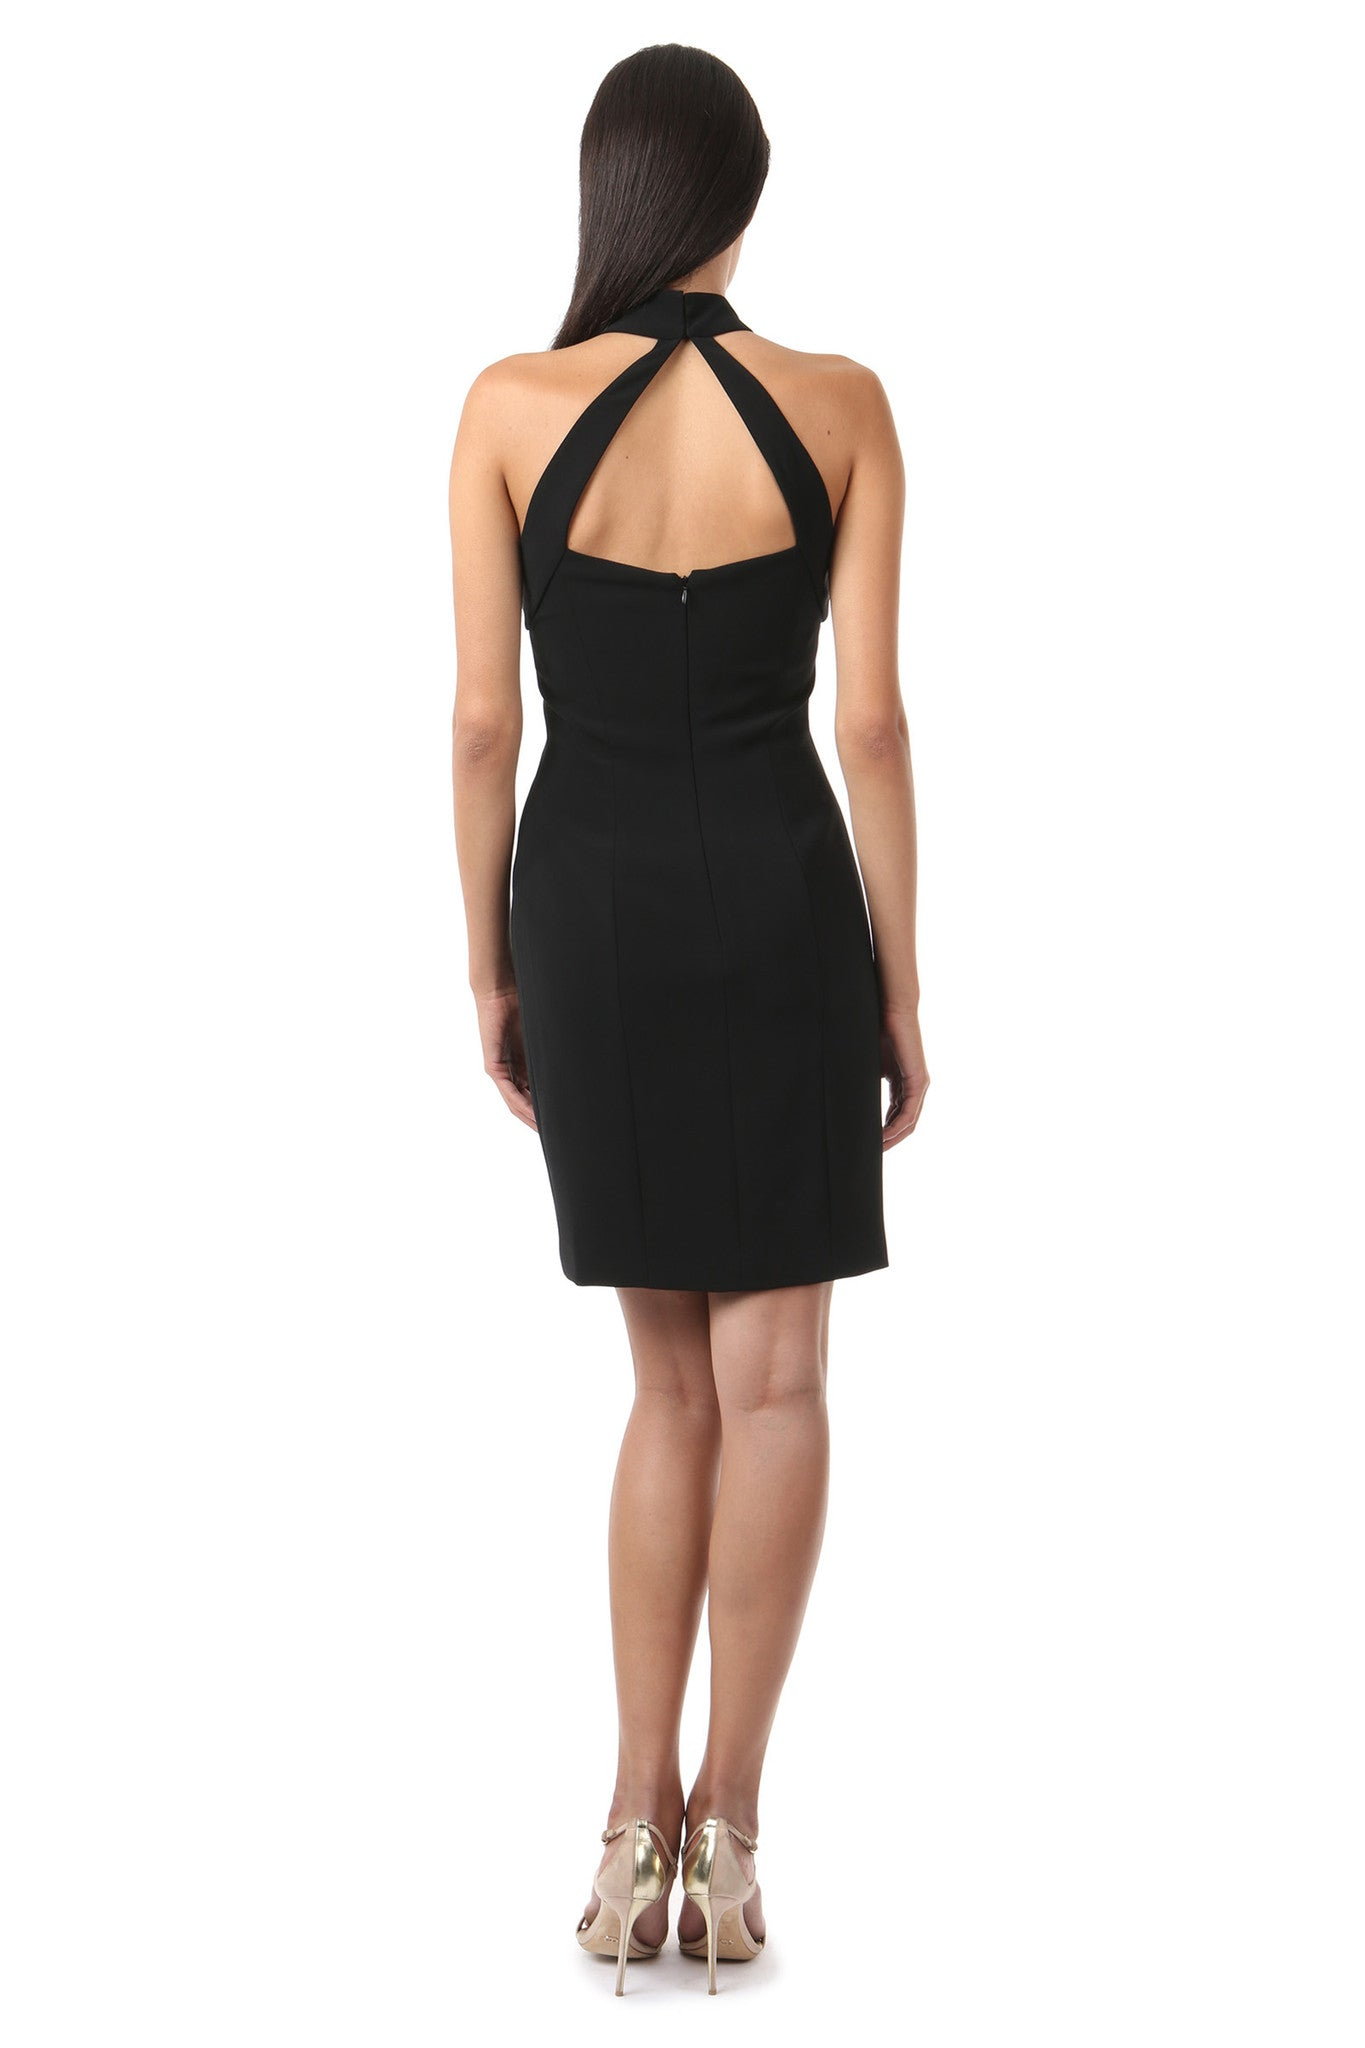 Jay Godfrey Black High-Neck Fitted Dress - Back View